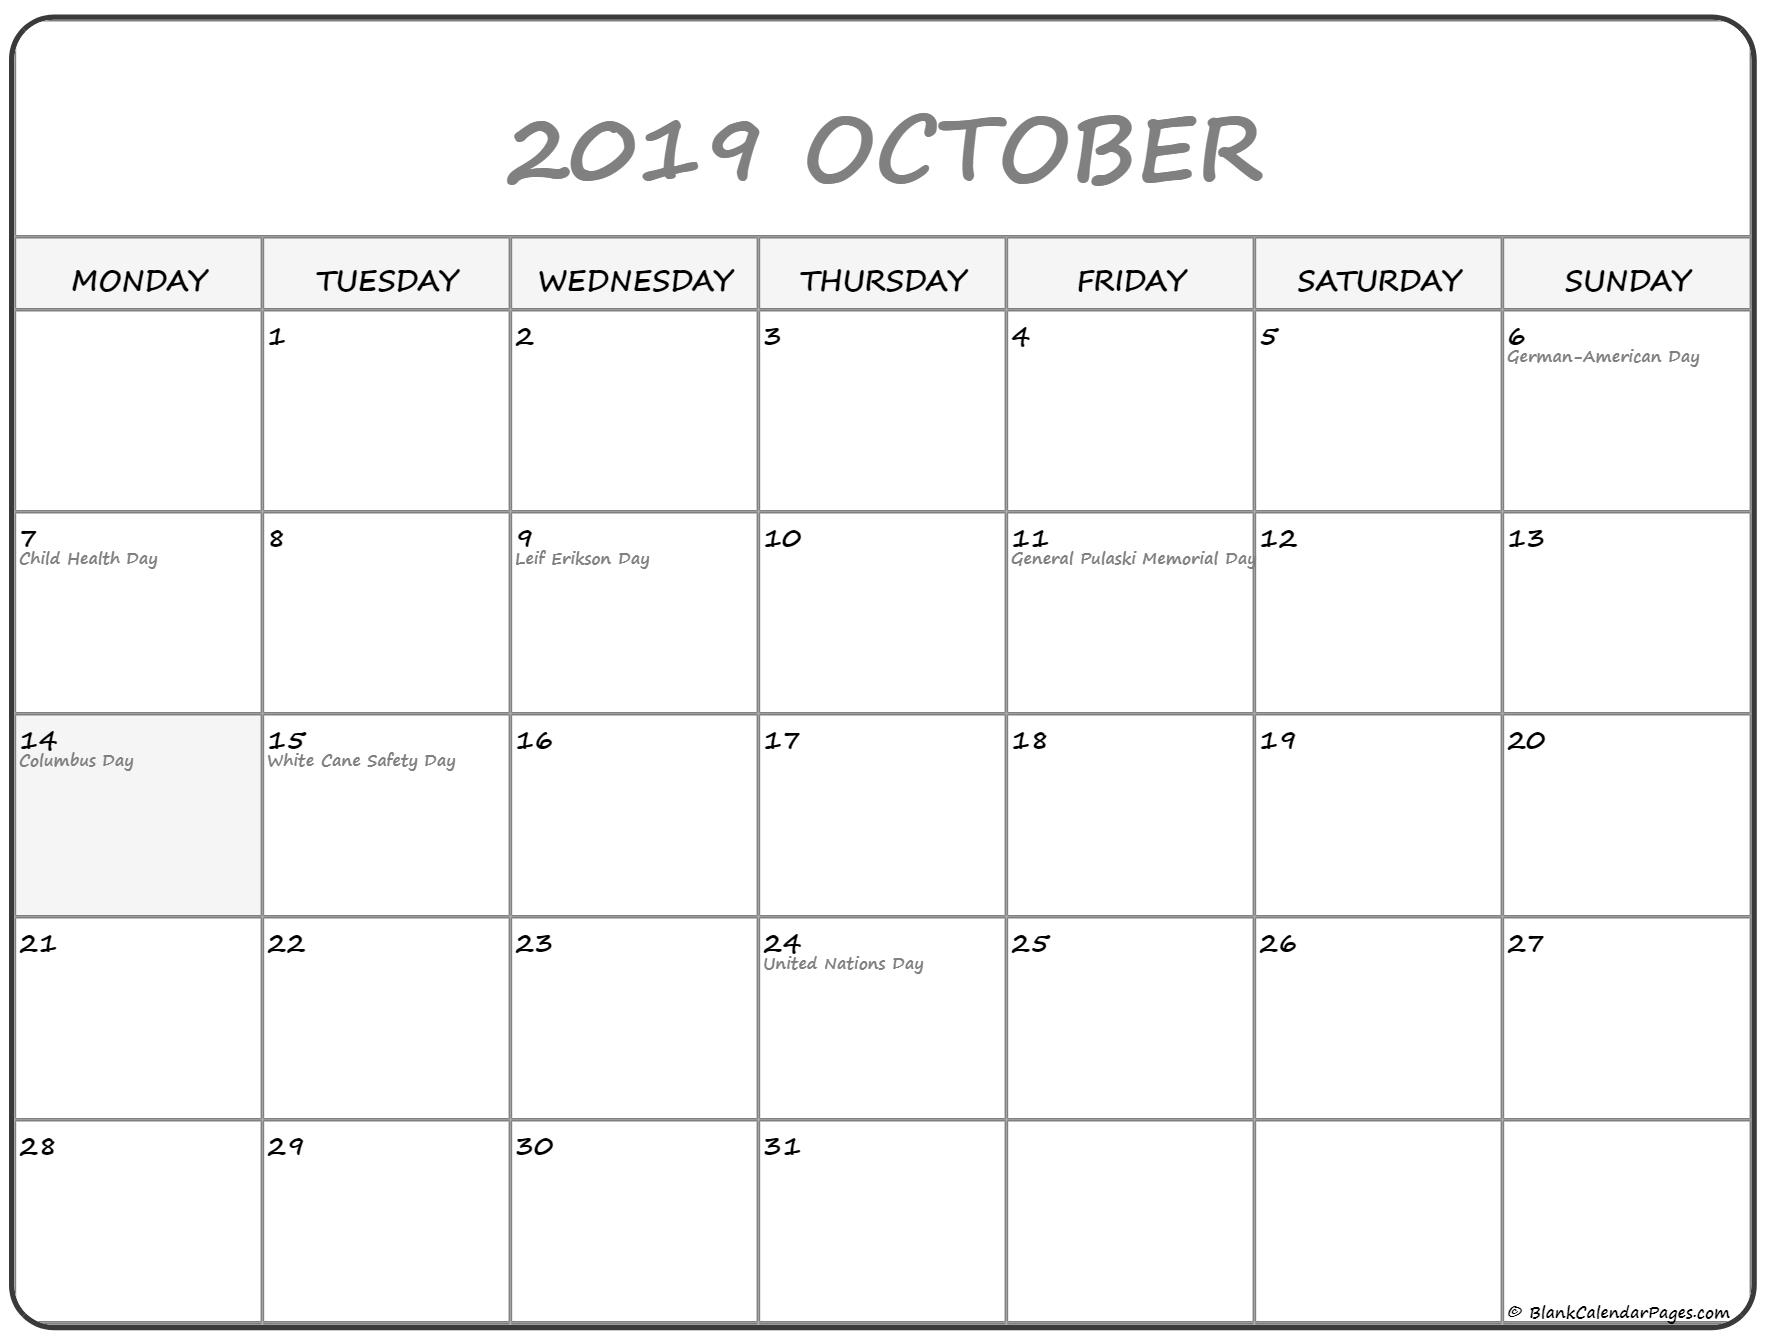 October 2019 Monday Calendar | Monday To Sunday throughout Calendar 2019 Monday To Sunday